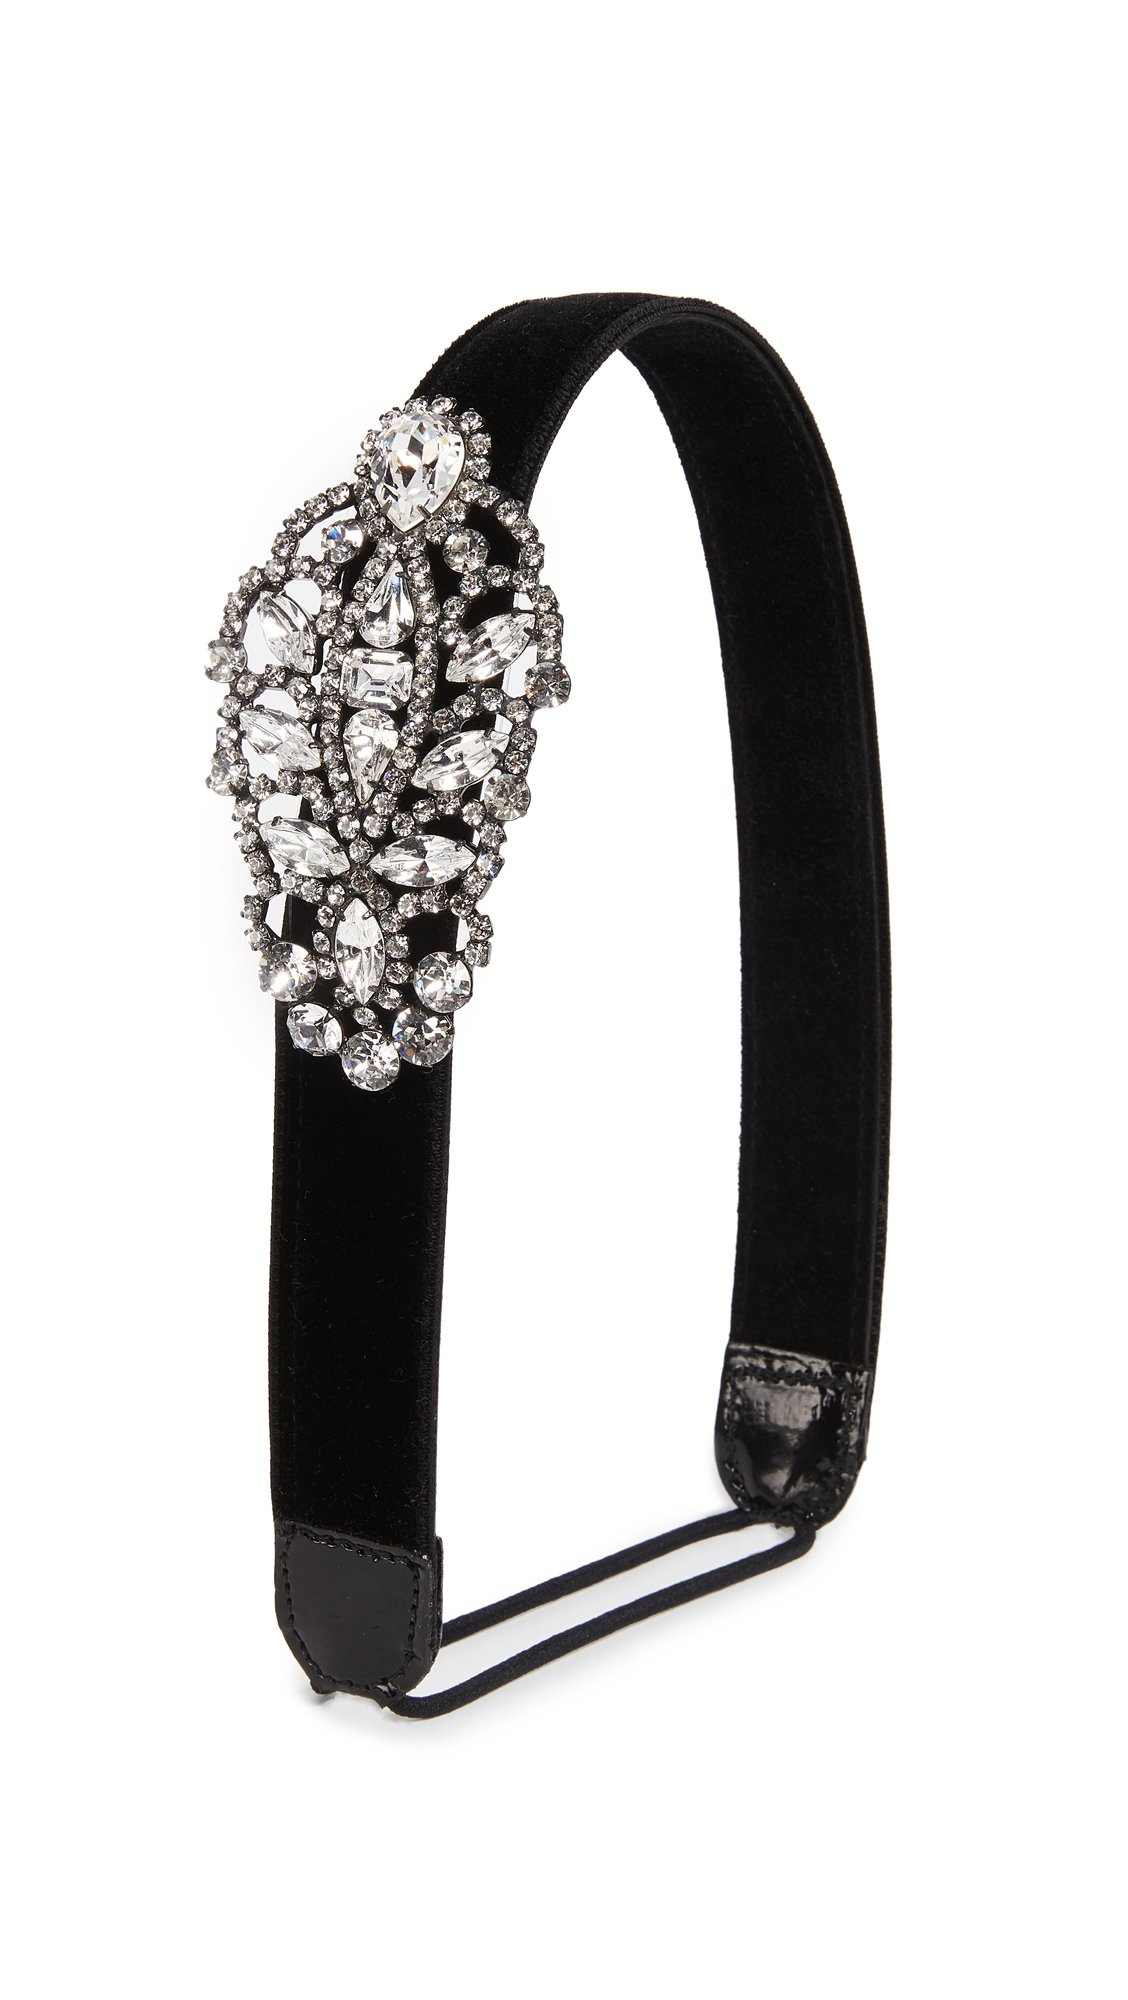 Jennifer Behr Women's Crystal Encrusted Headband, Black/Clear, One Size